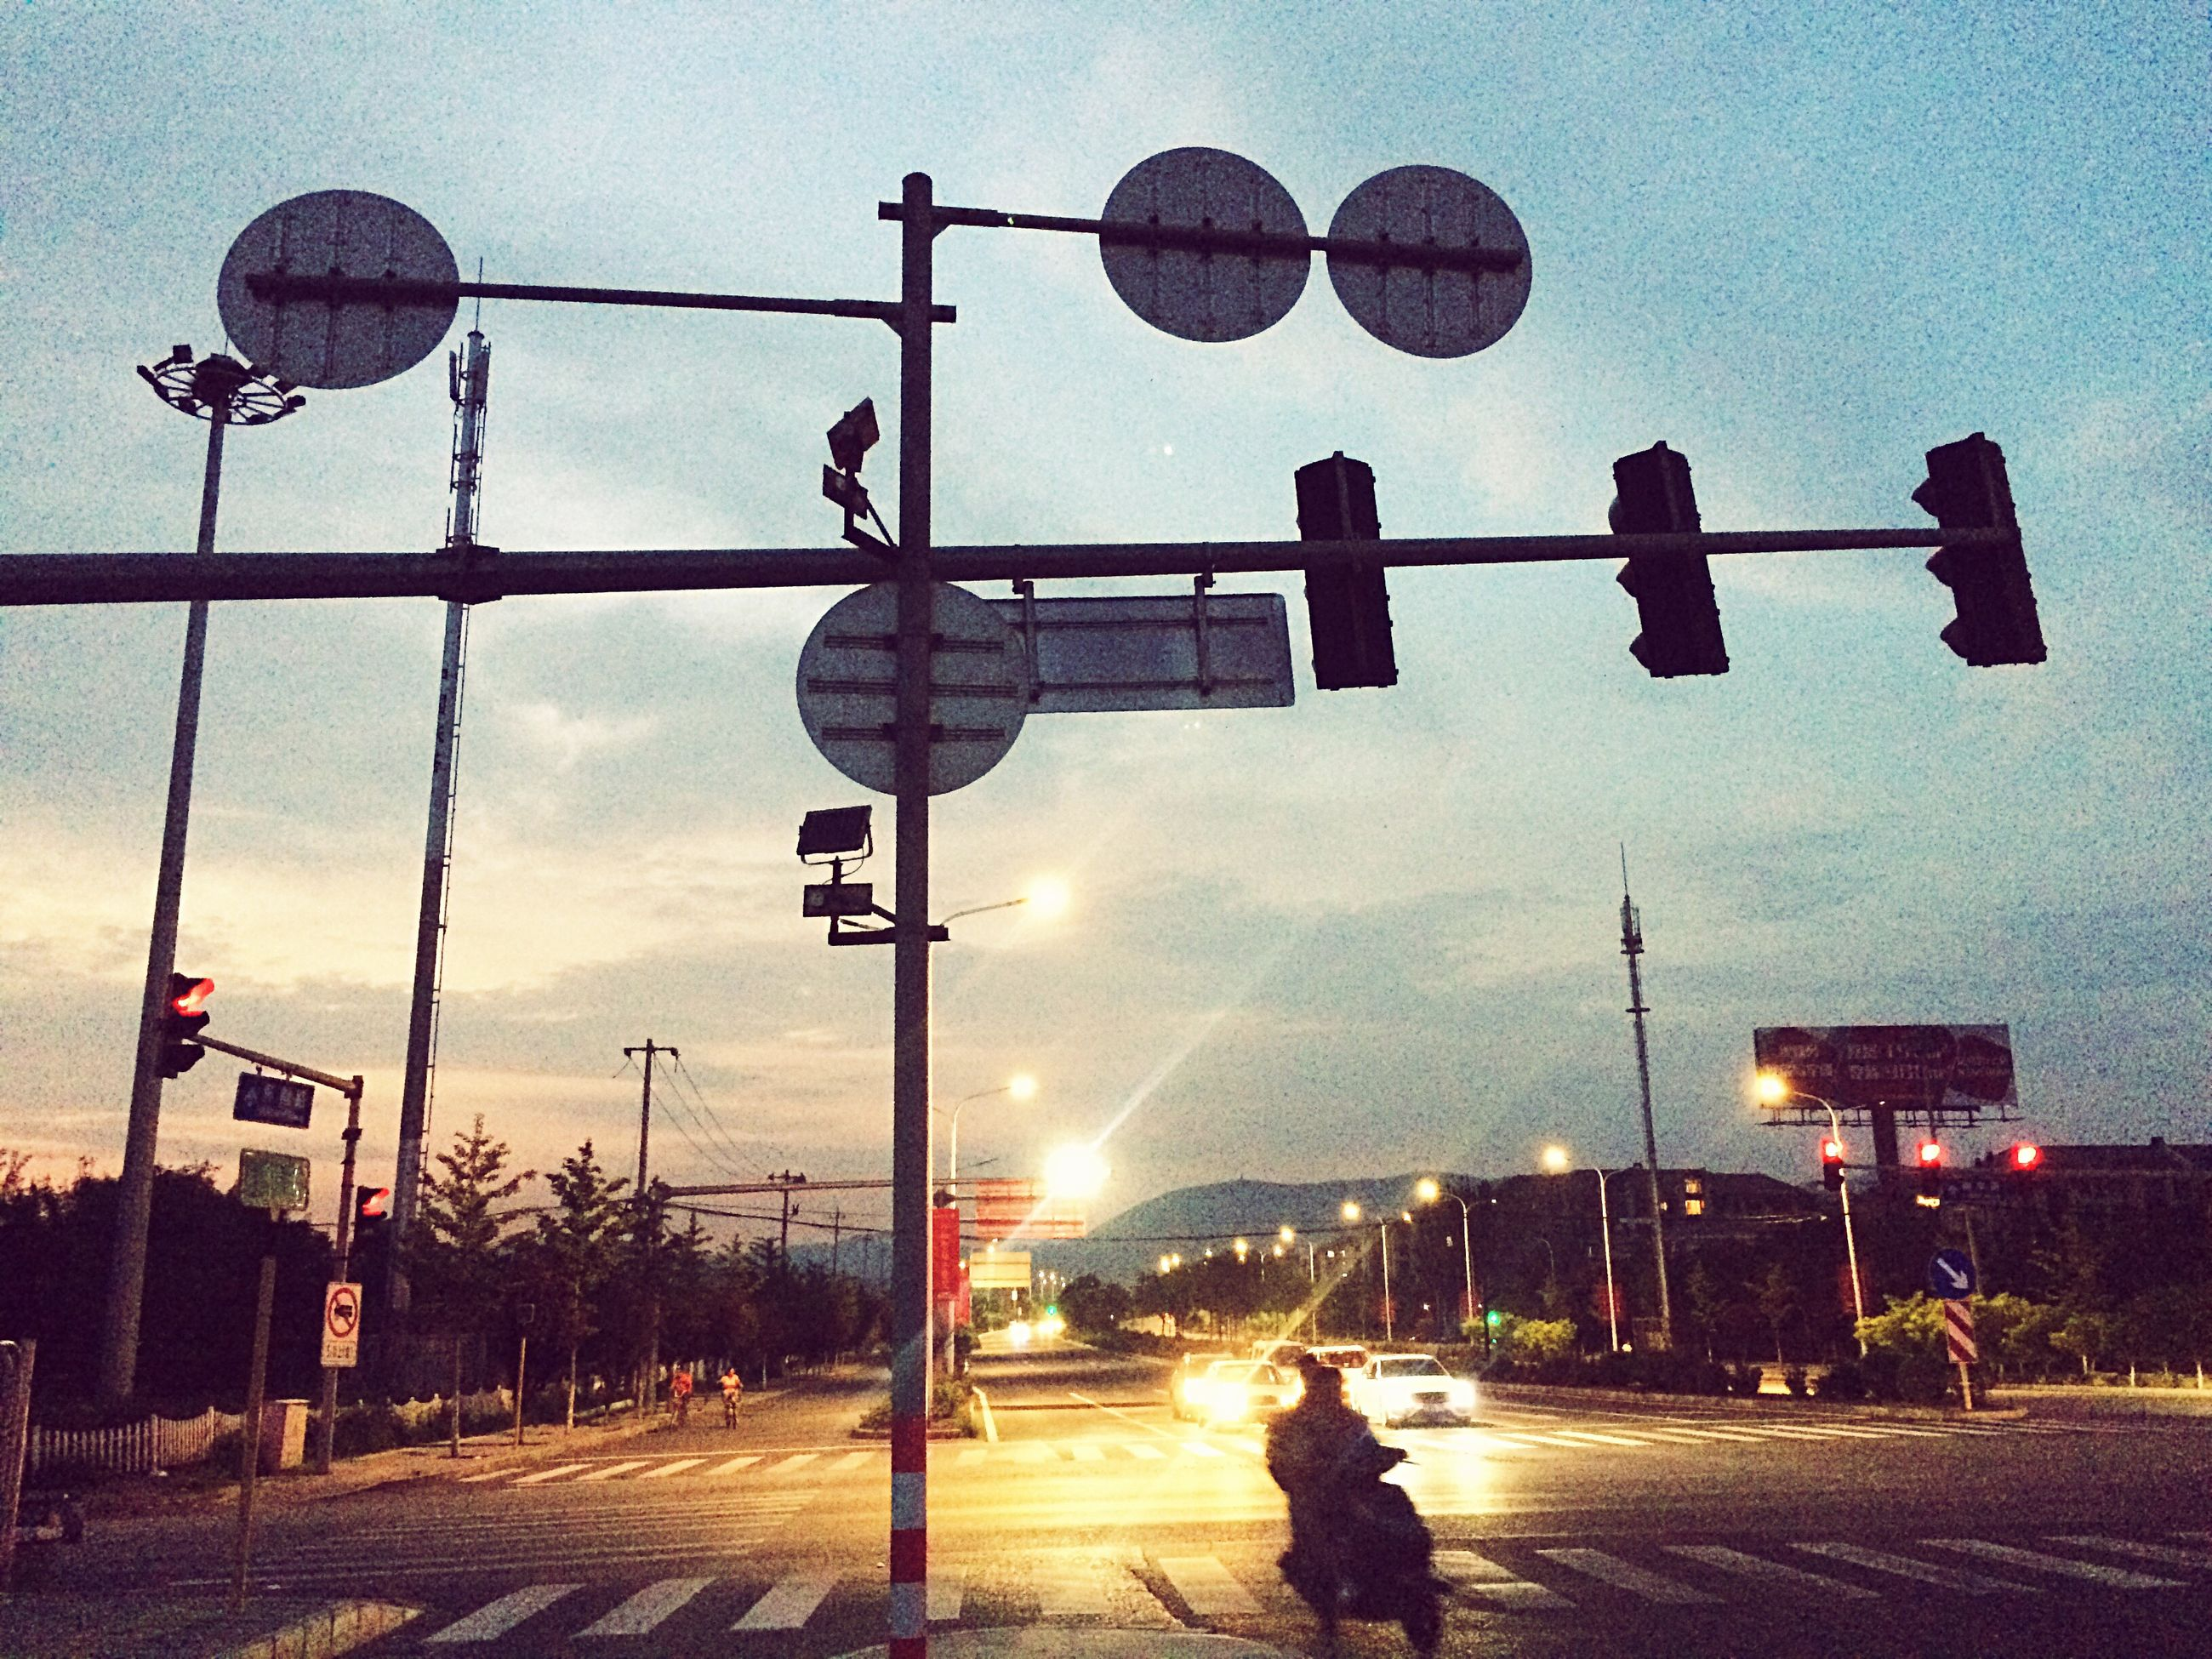 street light, traffic signal, traffic light, road sign, communication, sky, stoplight, architecture, built structure, outdoors, building exterior, signal, day, city, no people